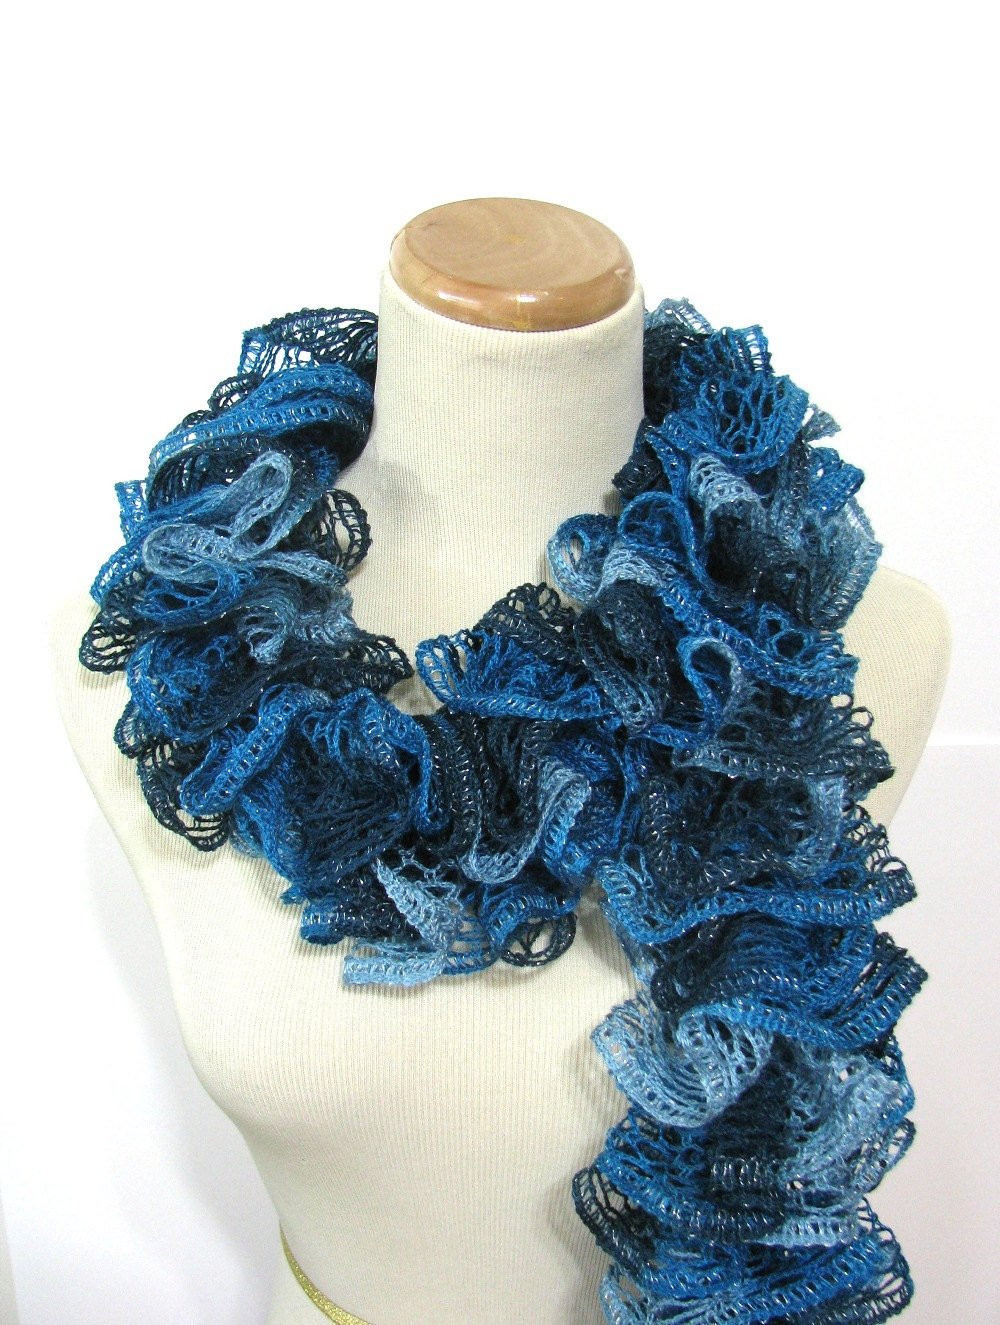 New Hand Knit Ruffled Scarf Turquoise Blue Teal by Arlenesboutique Knit Ruffle Scarf Of Marvelous 50 Pics Knit Ruffle Scarf